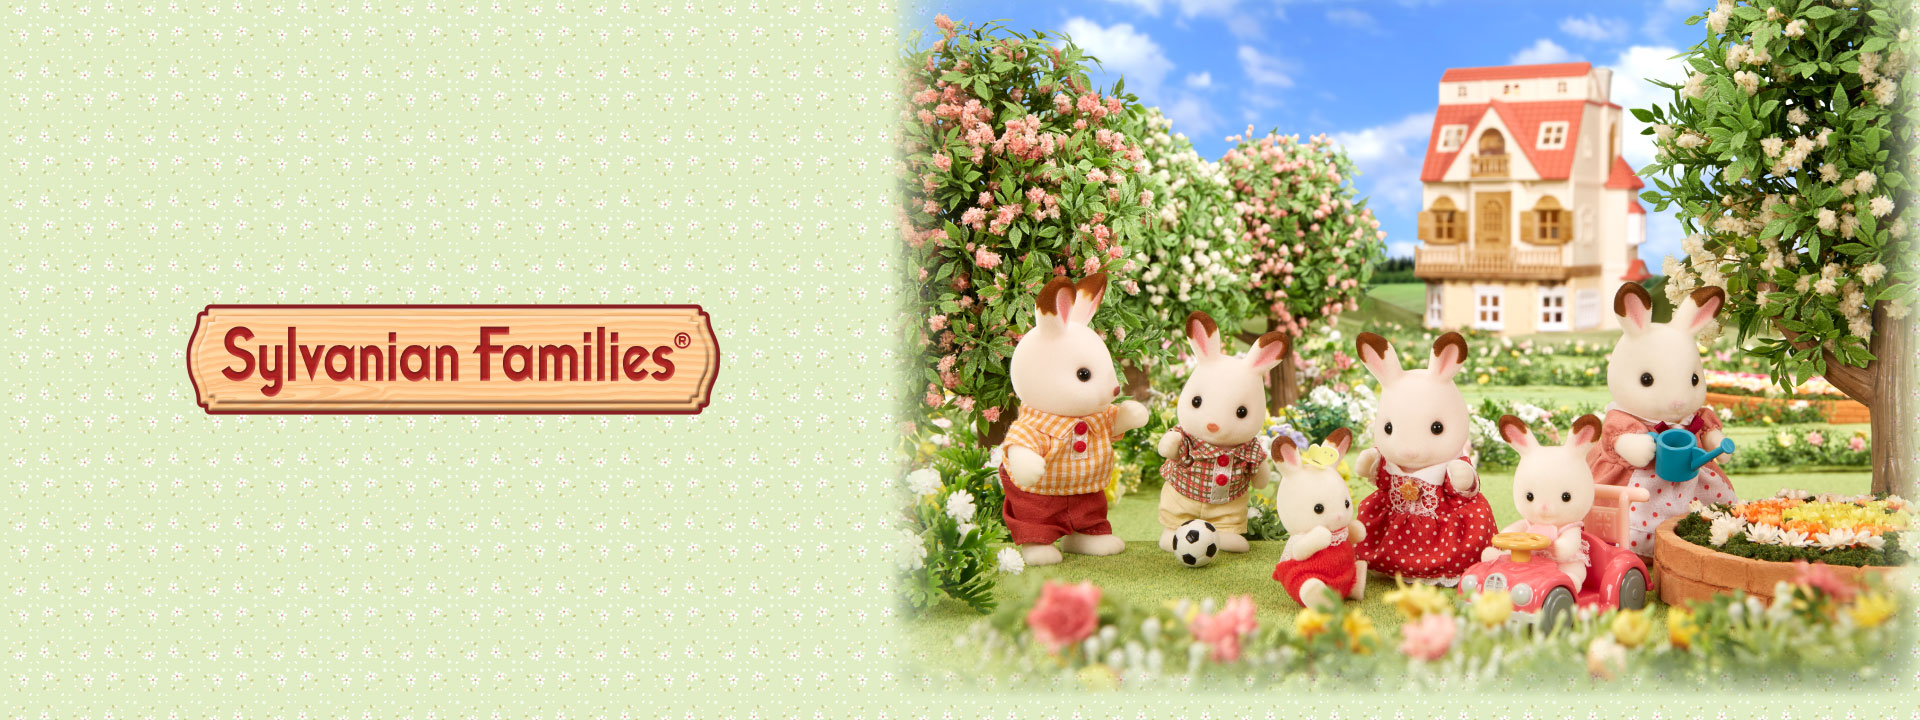 Sylvanian Families Furniture